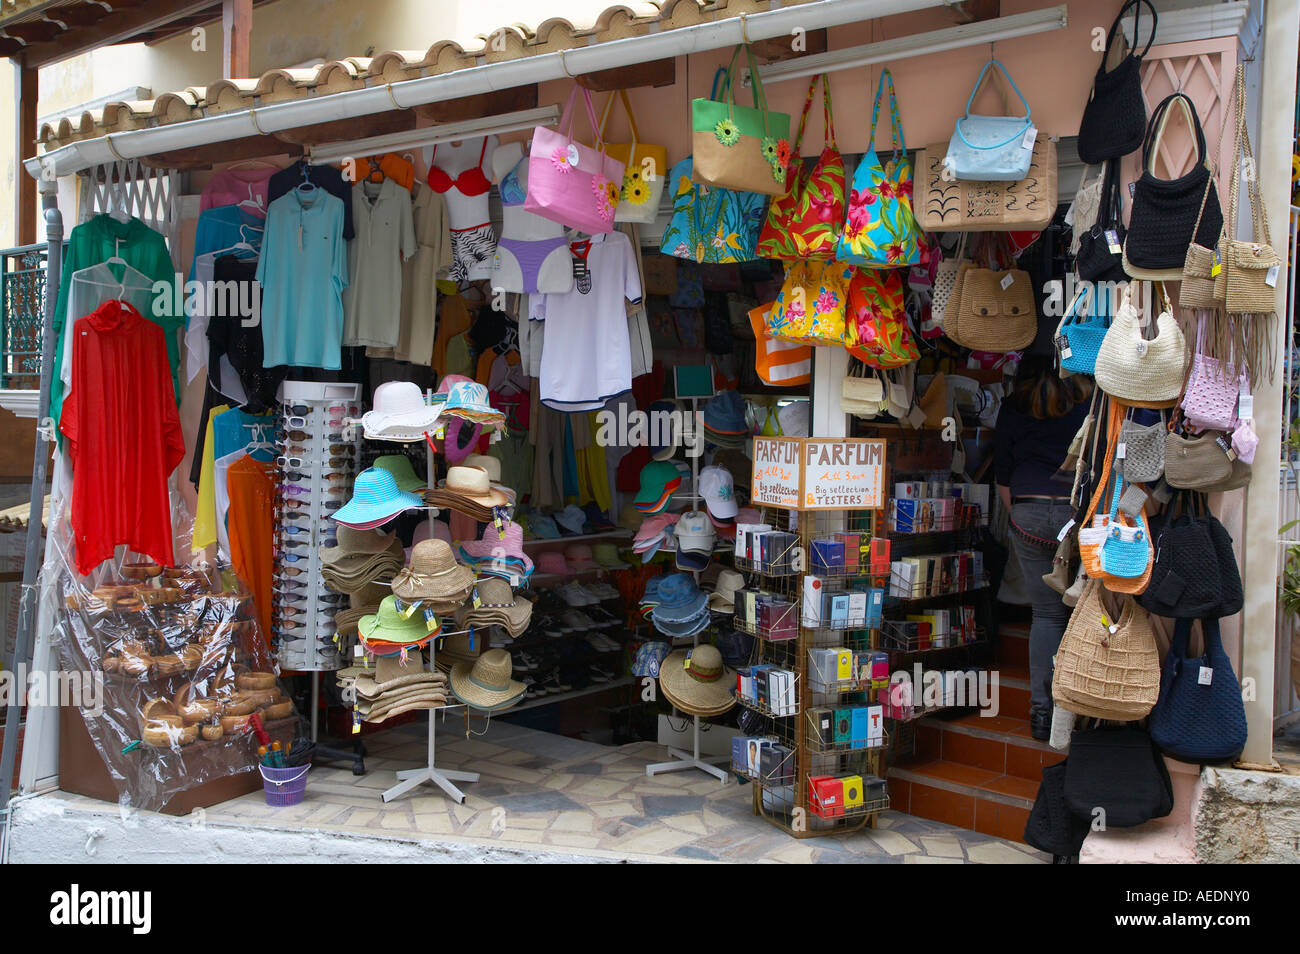 Tourist shop display of hats bags and tee shirts in Kassiopi Greece - Stock Image